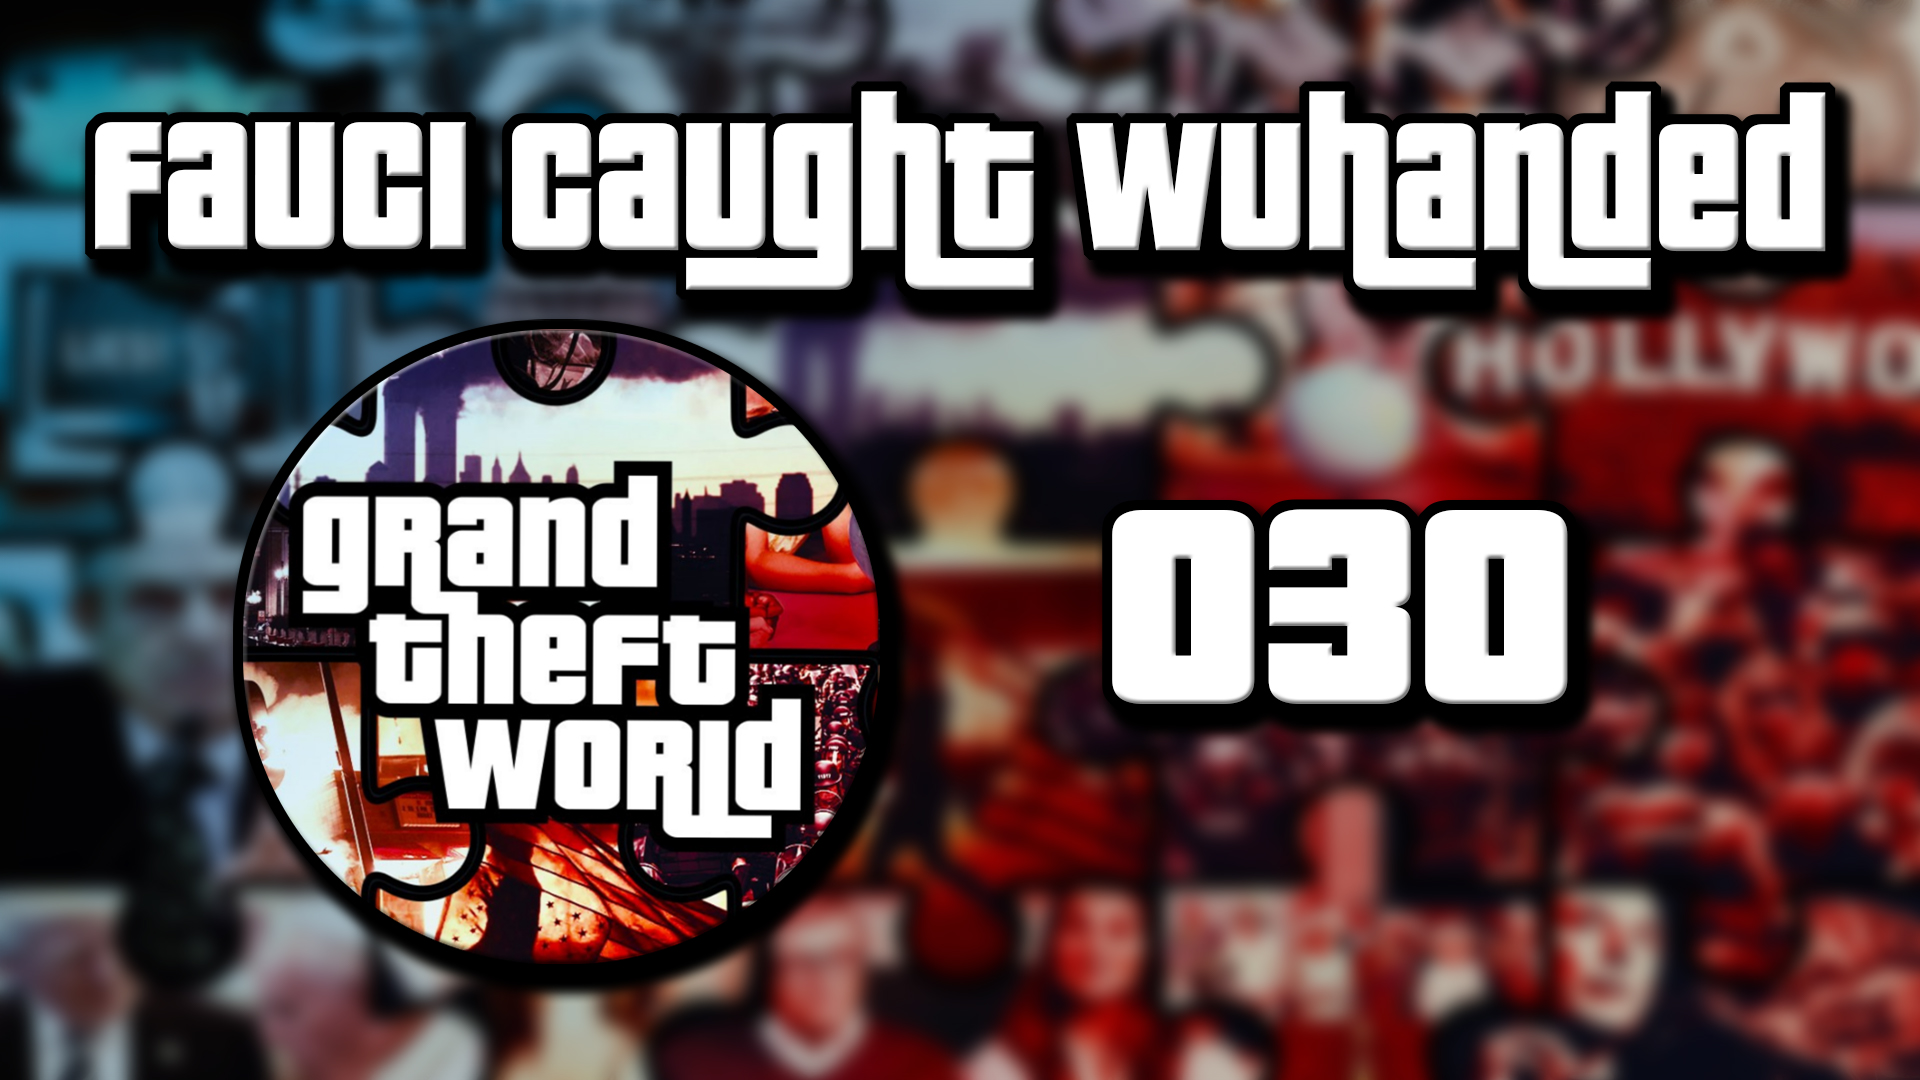 Grand Theft World Podcast 030 | Fauci Caught WuHanded